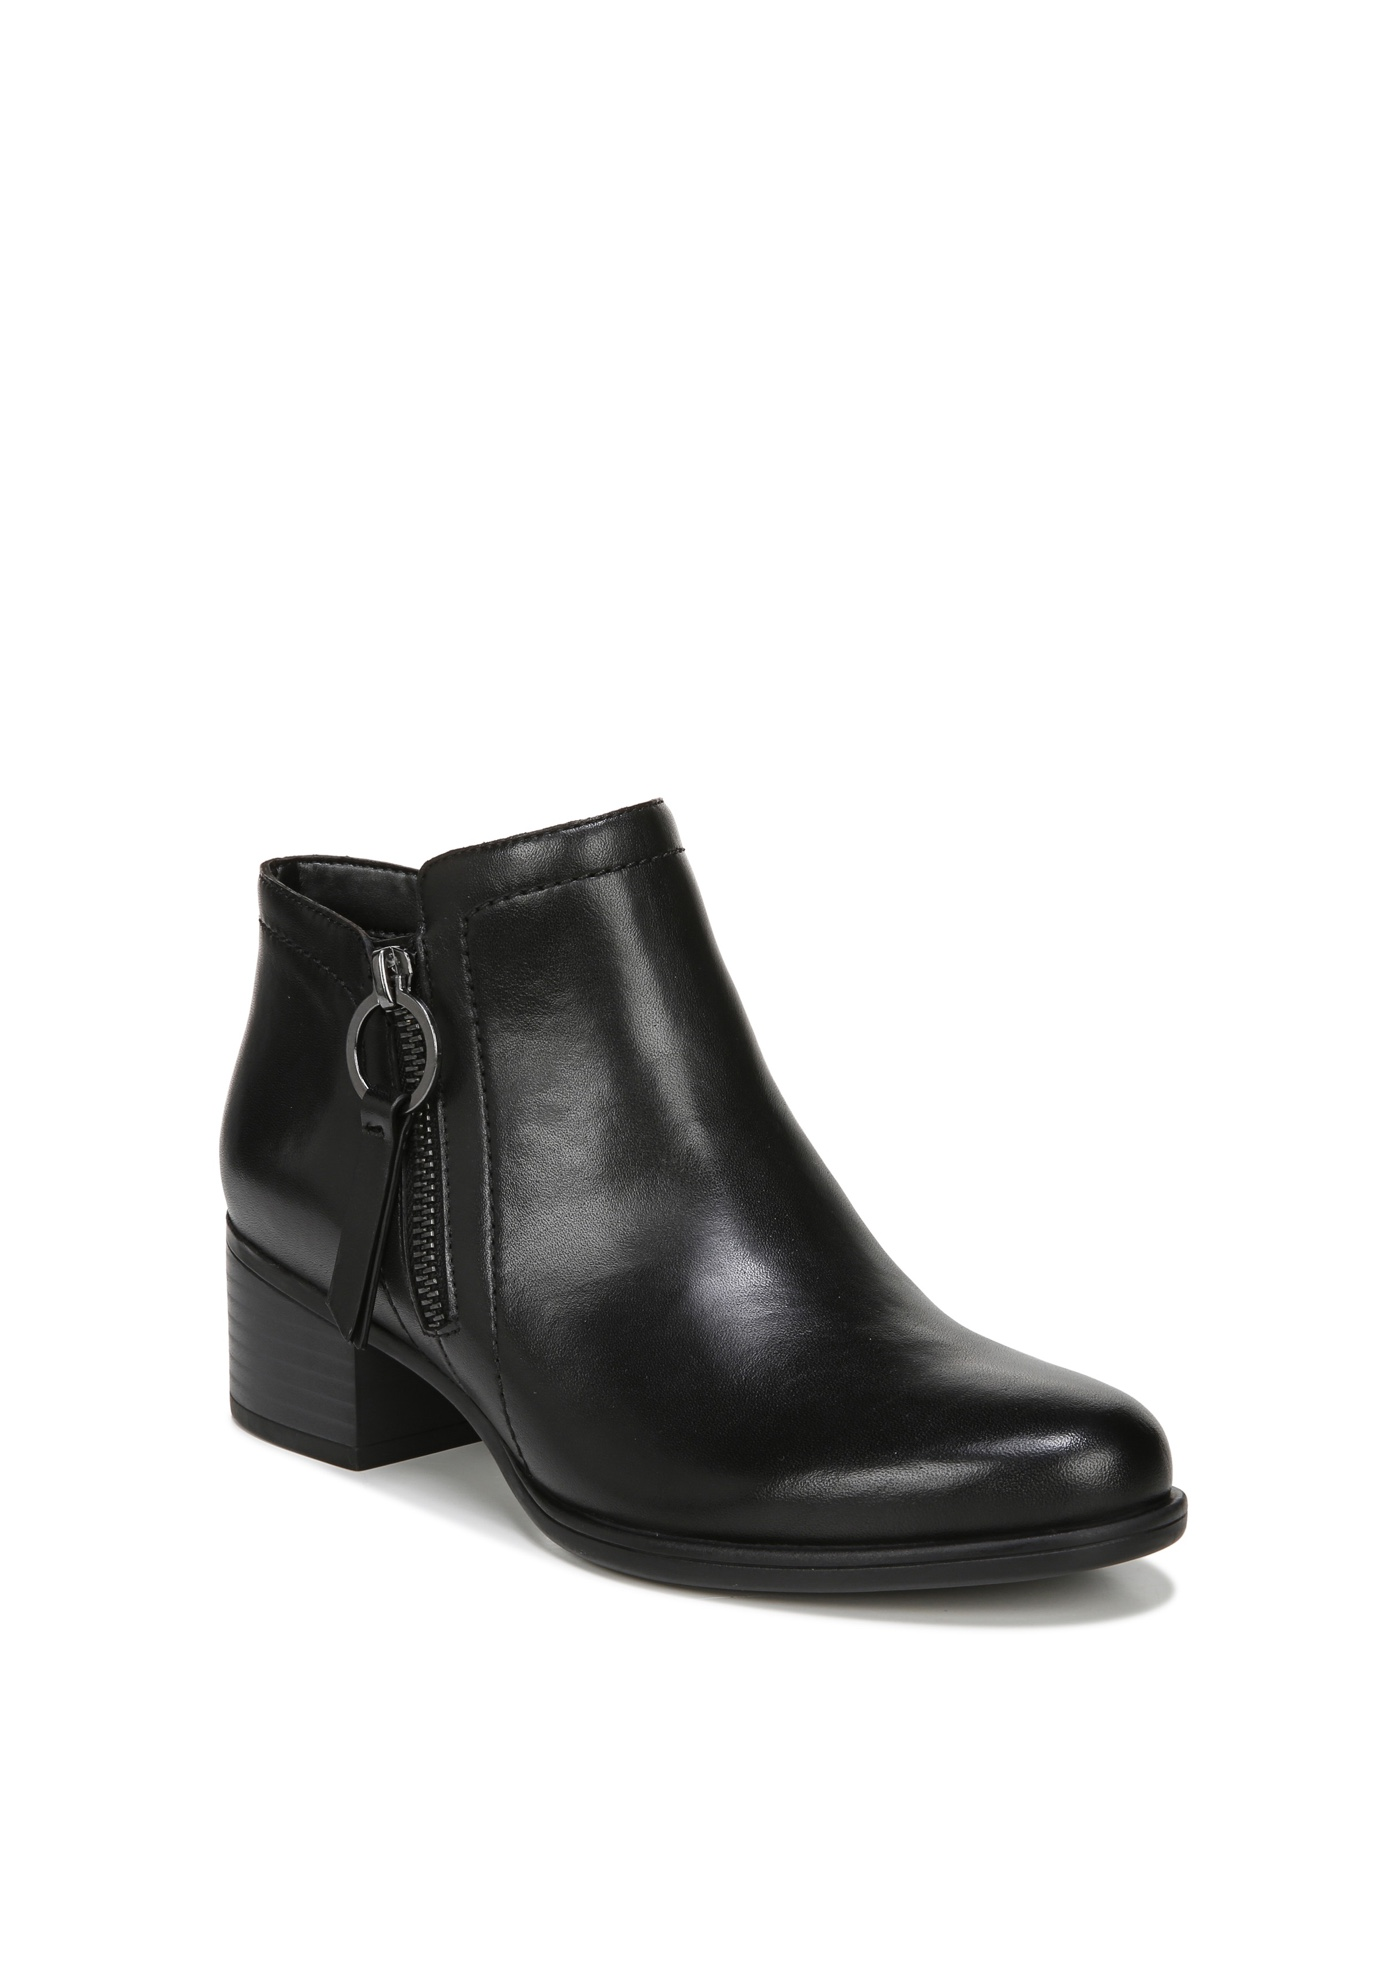 Denali Booties by Naturalizer,